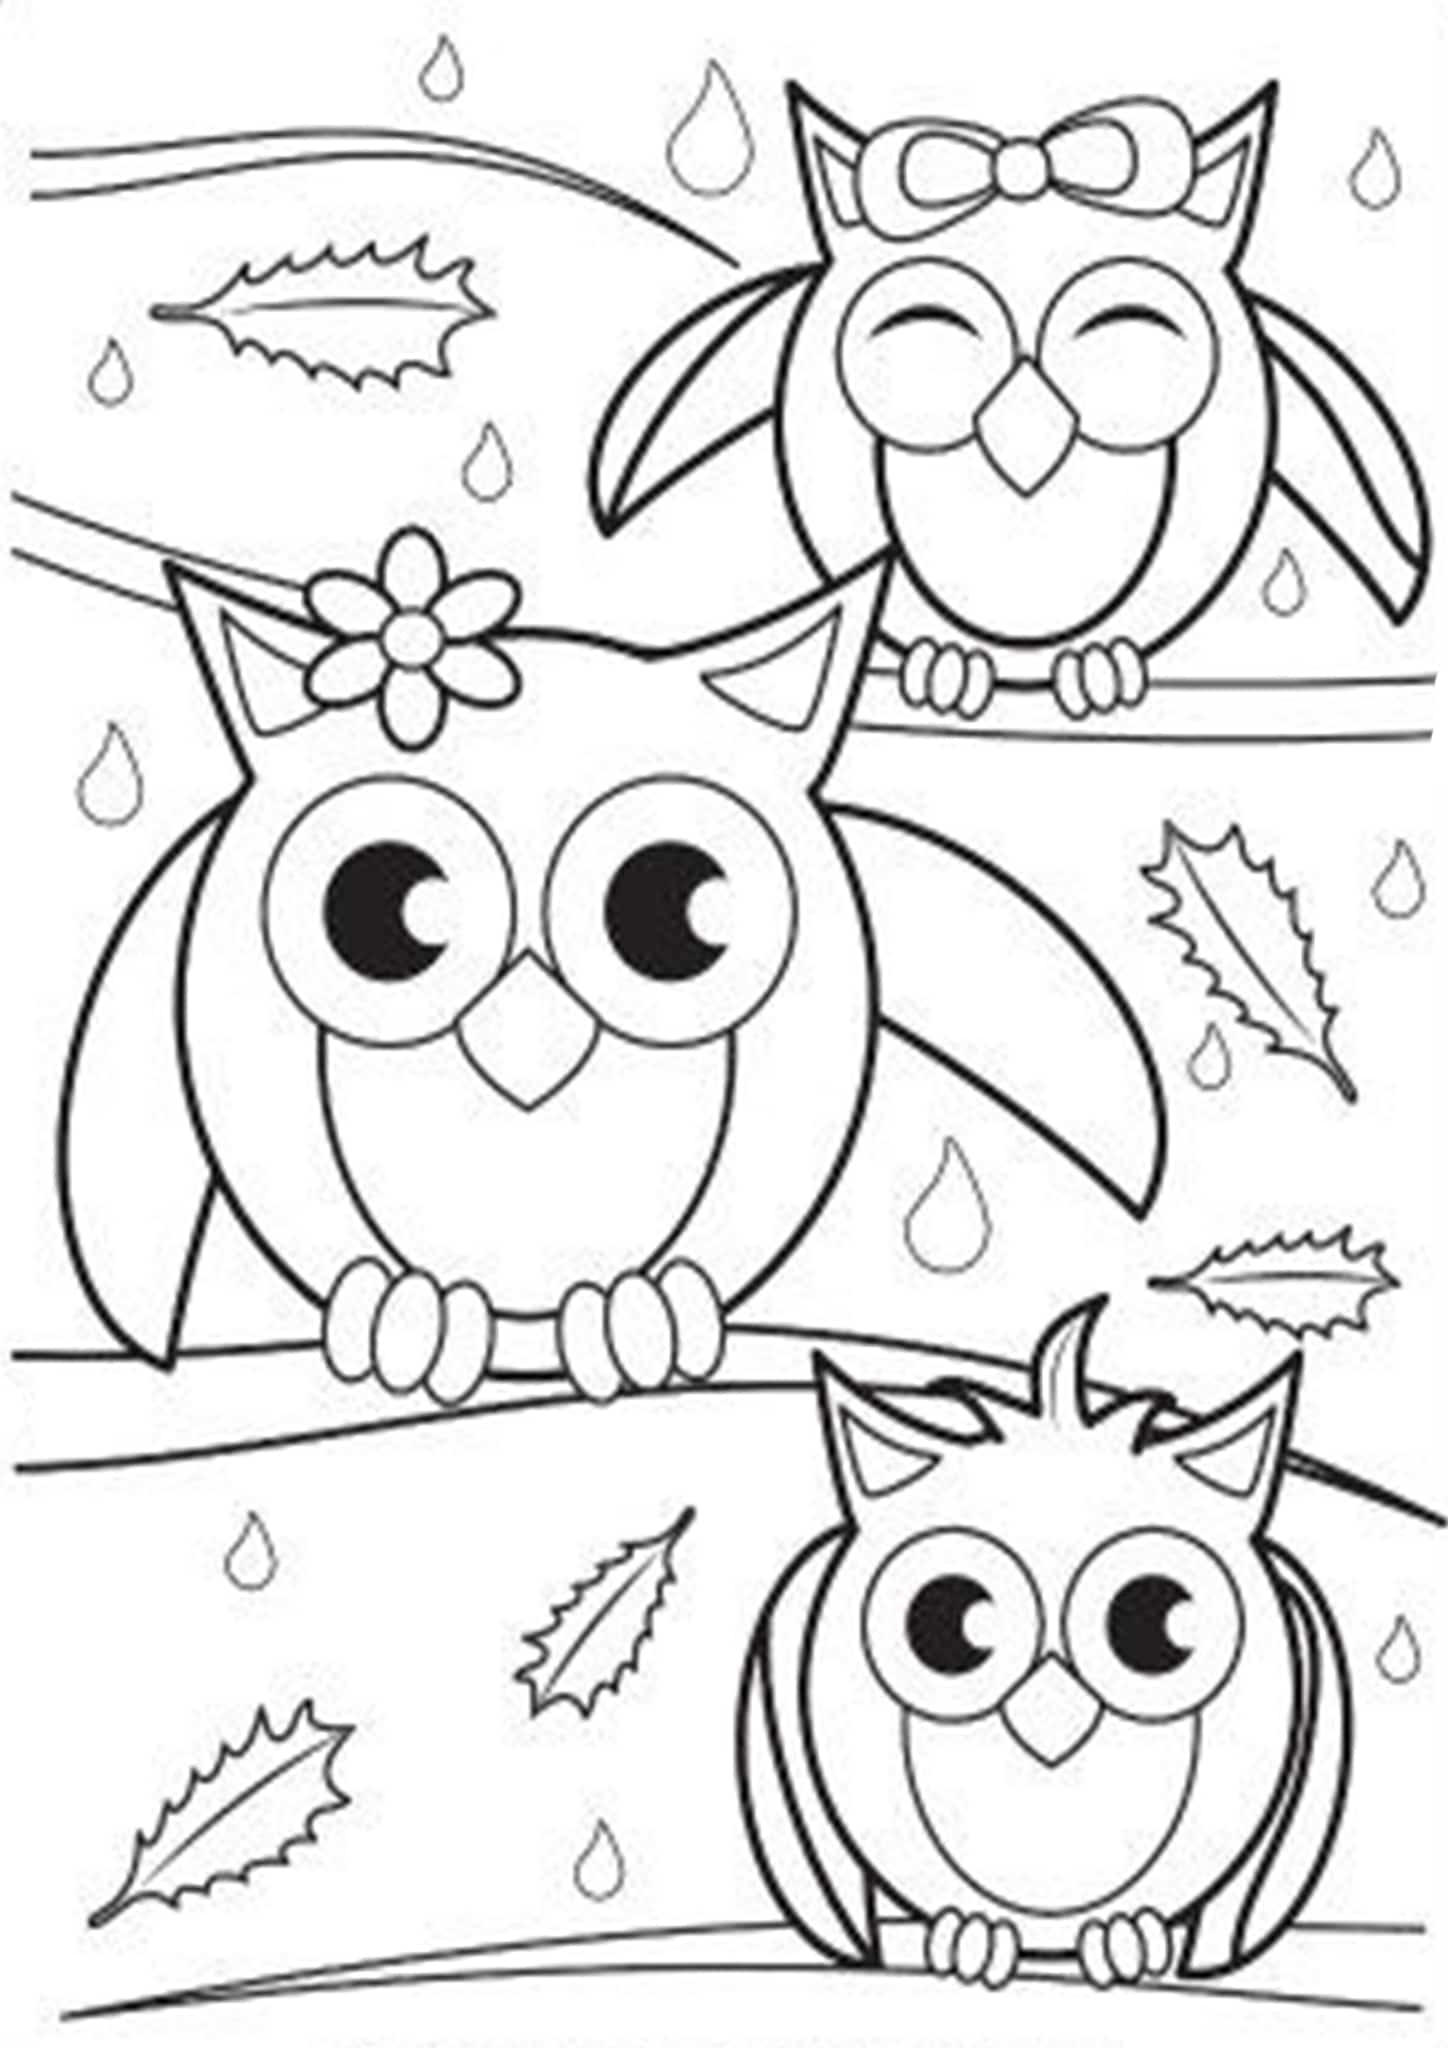 kids easy coloring book easy coloring pages best coloring pages for kids coloring kids easy book